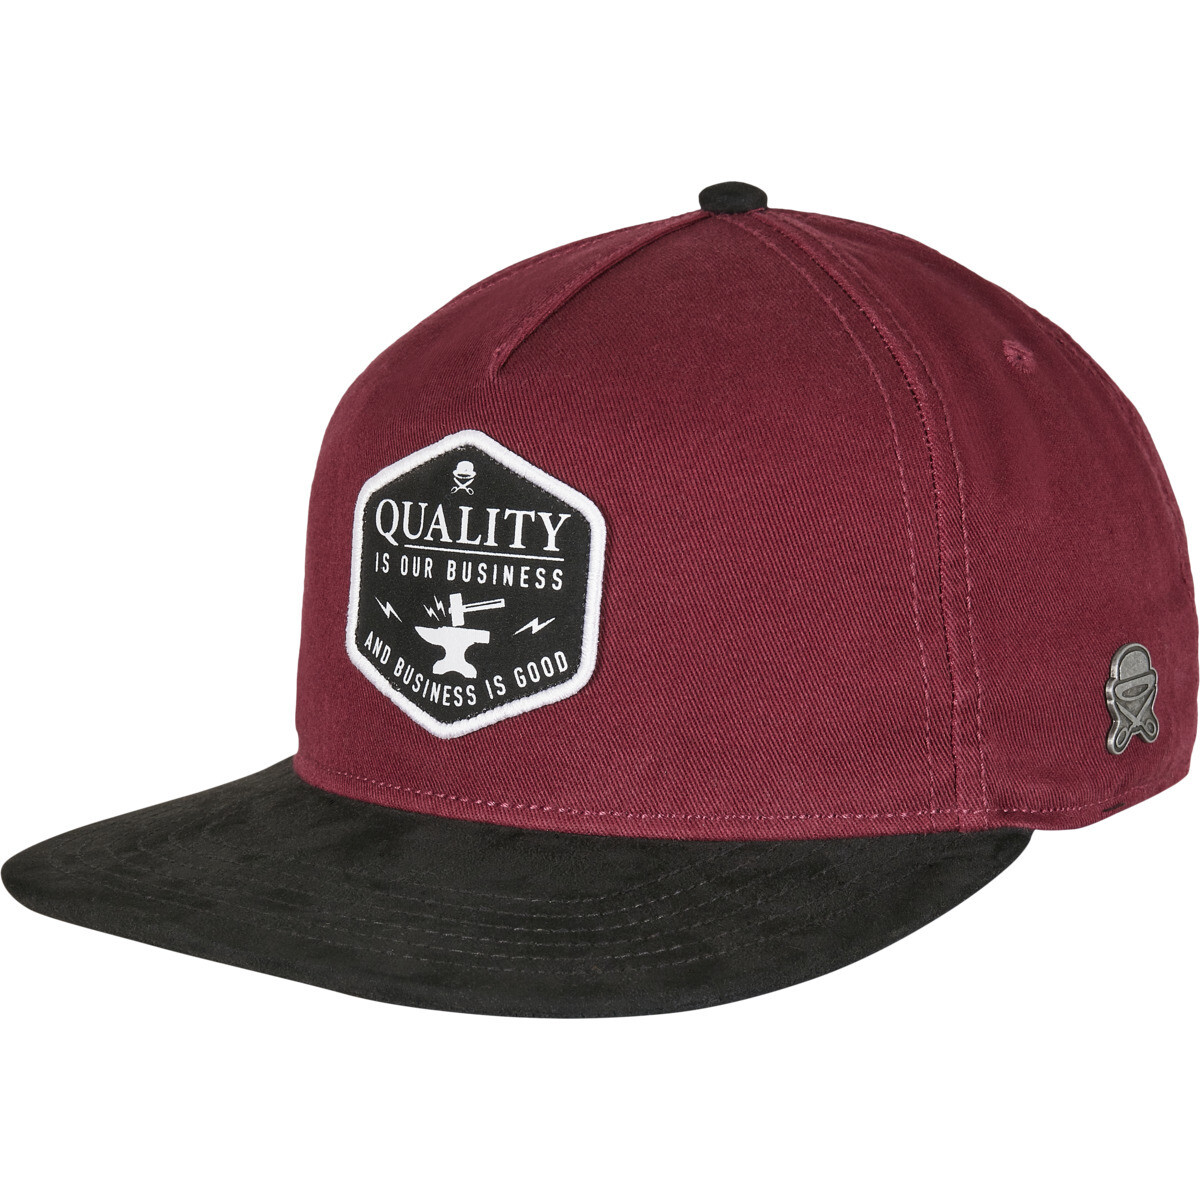 C&S CL Our Business Snapback